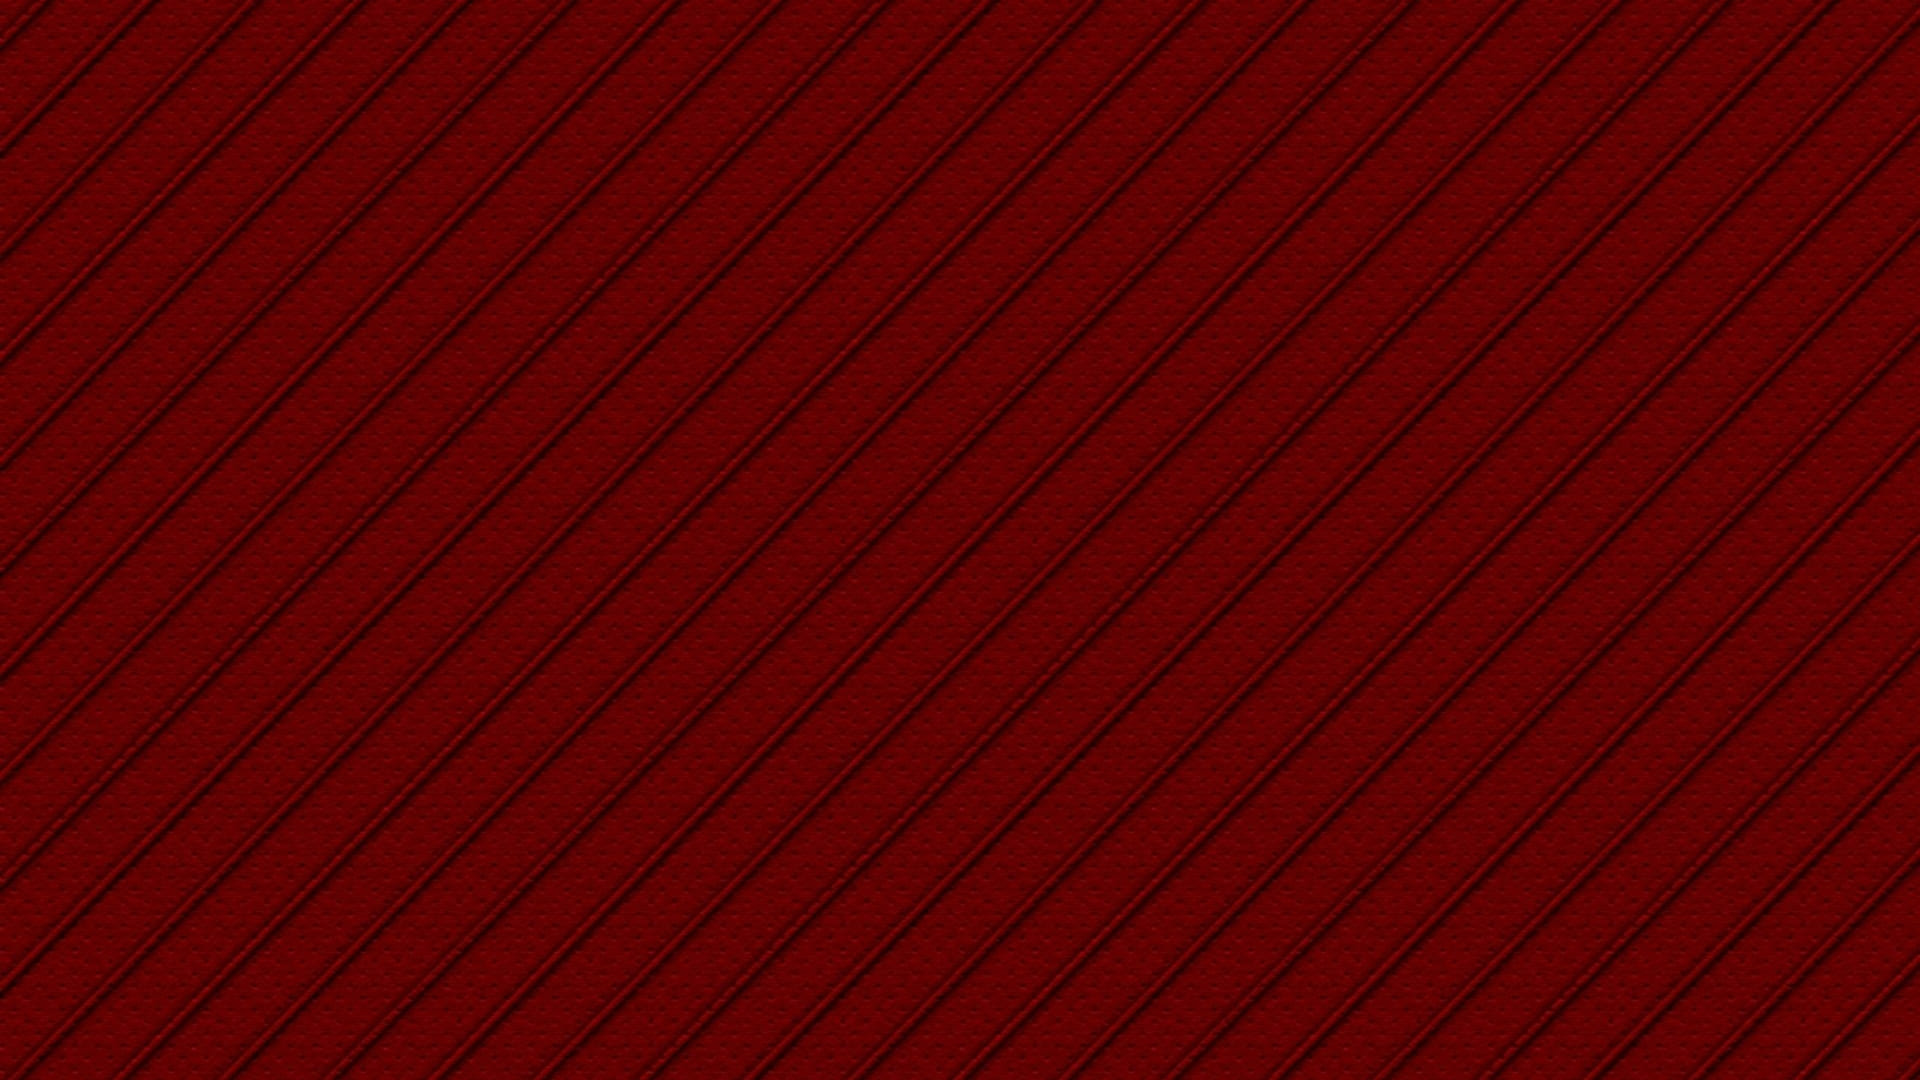 Red patterned backgrounds